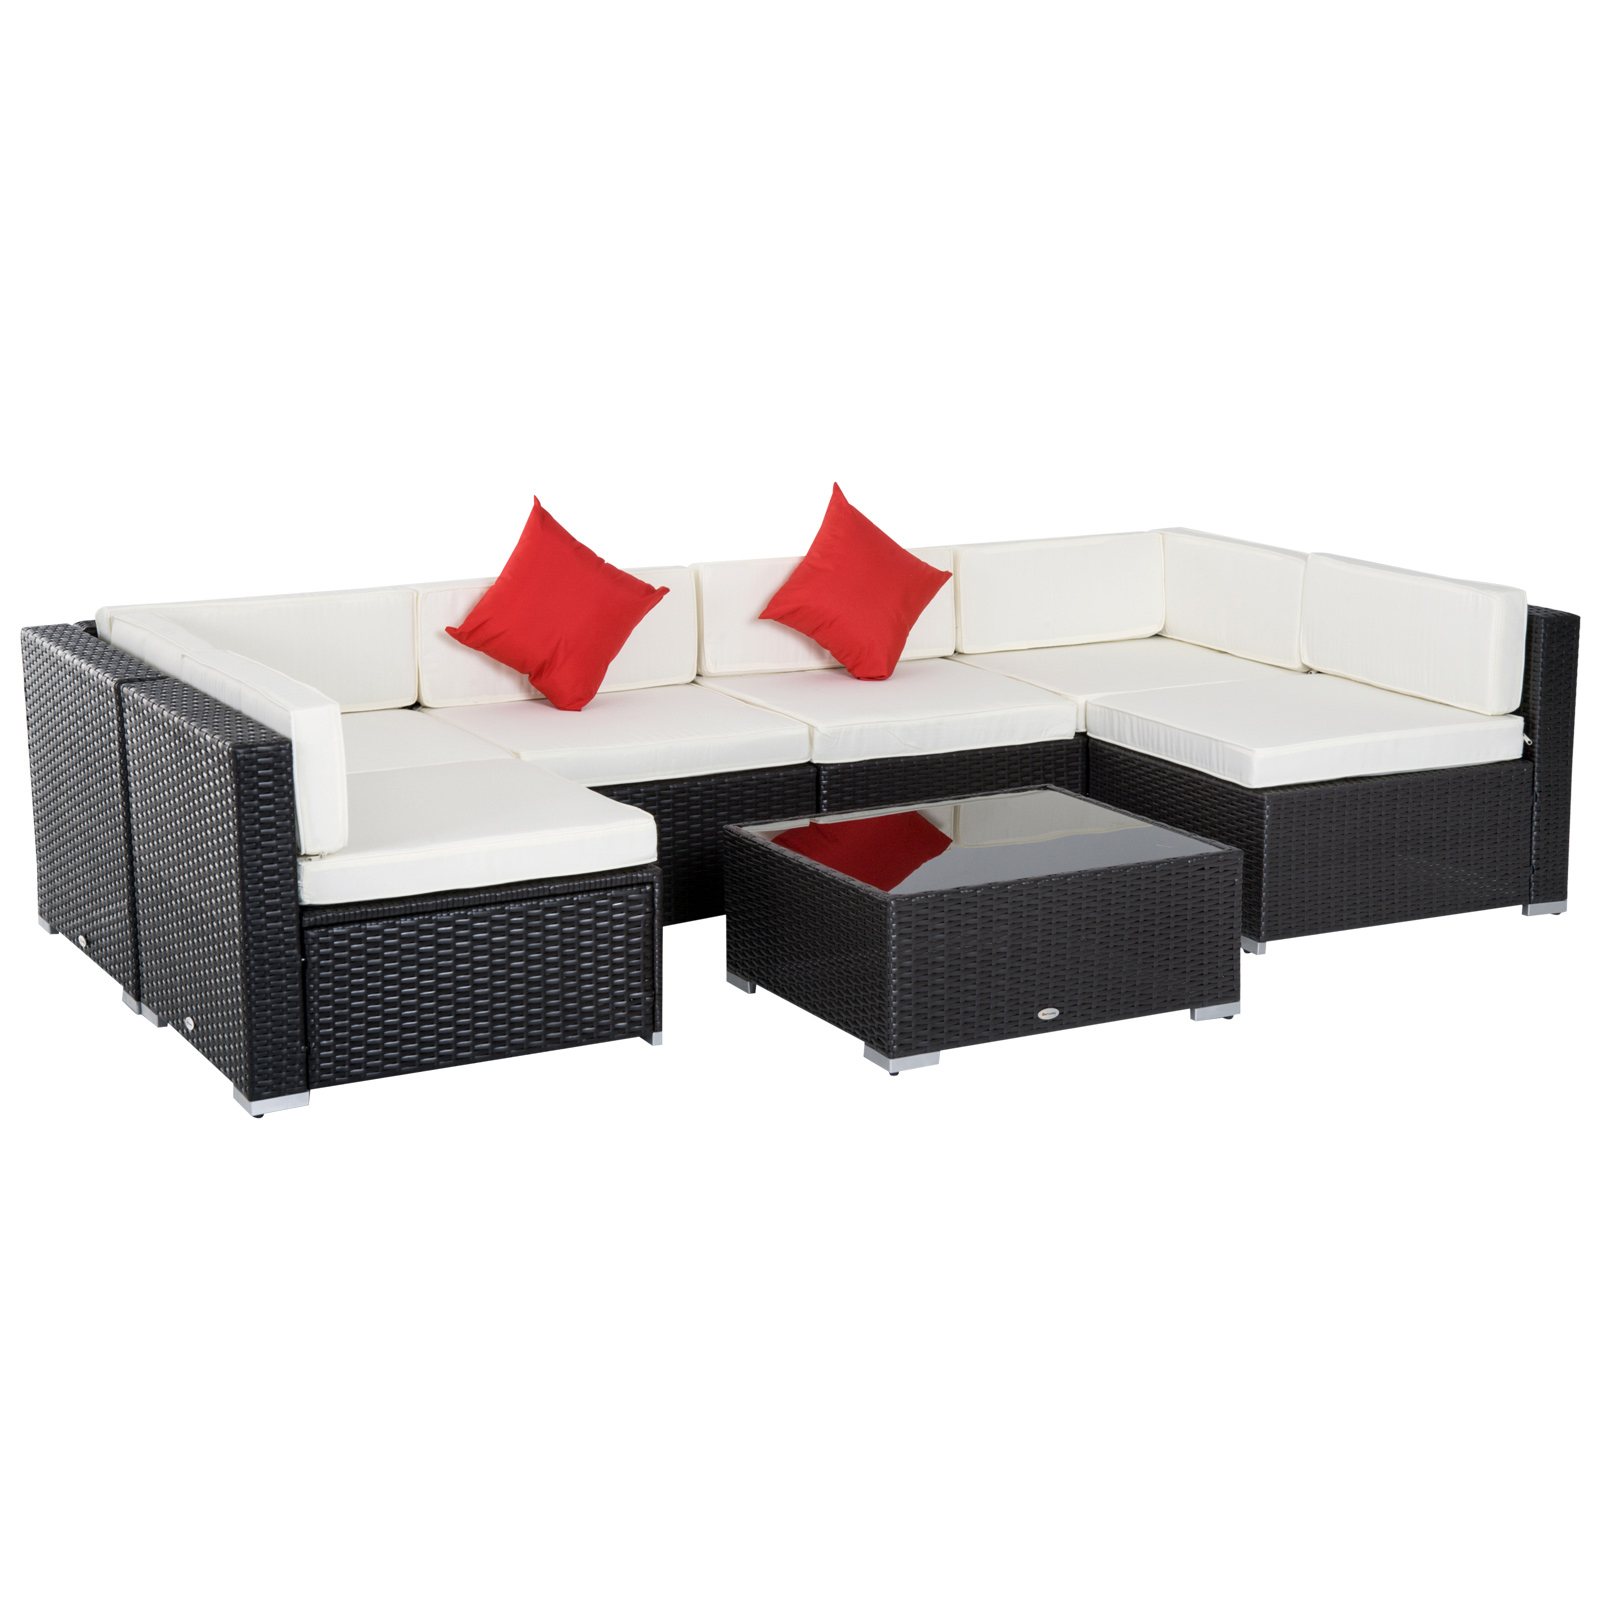 Outsunny 7 Piece Outdoor Patio Pe Rattan Wicker Sofa Sectional Furniture Set Patio Furniture Aosom Canada - Rattan Garden Furniture Clearance Sale